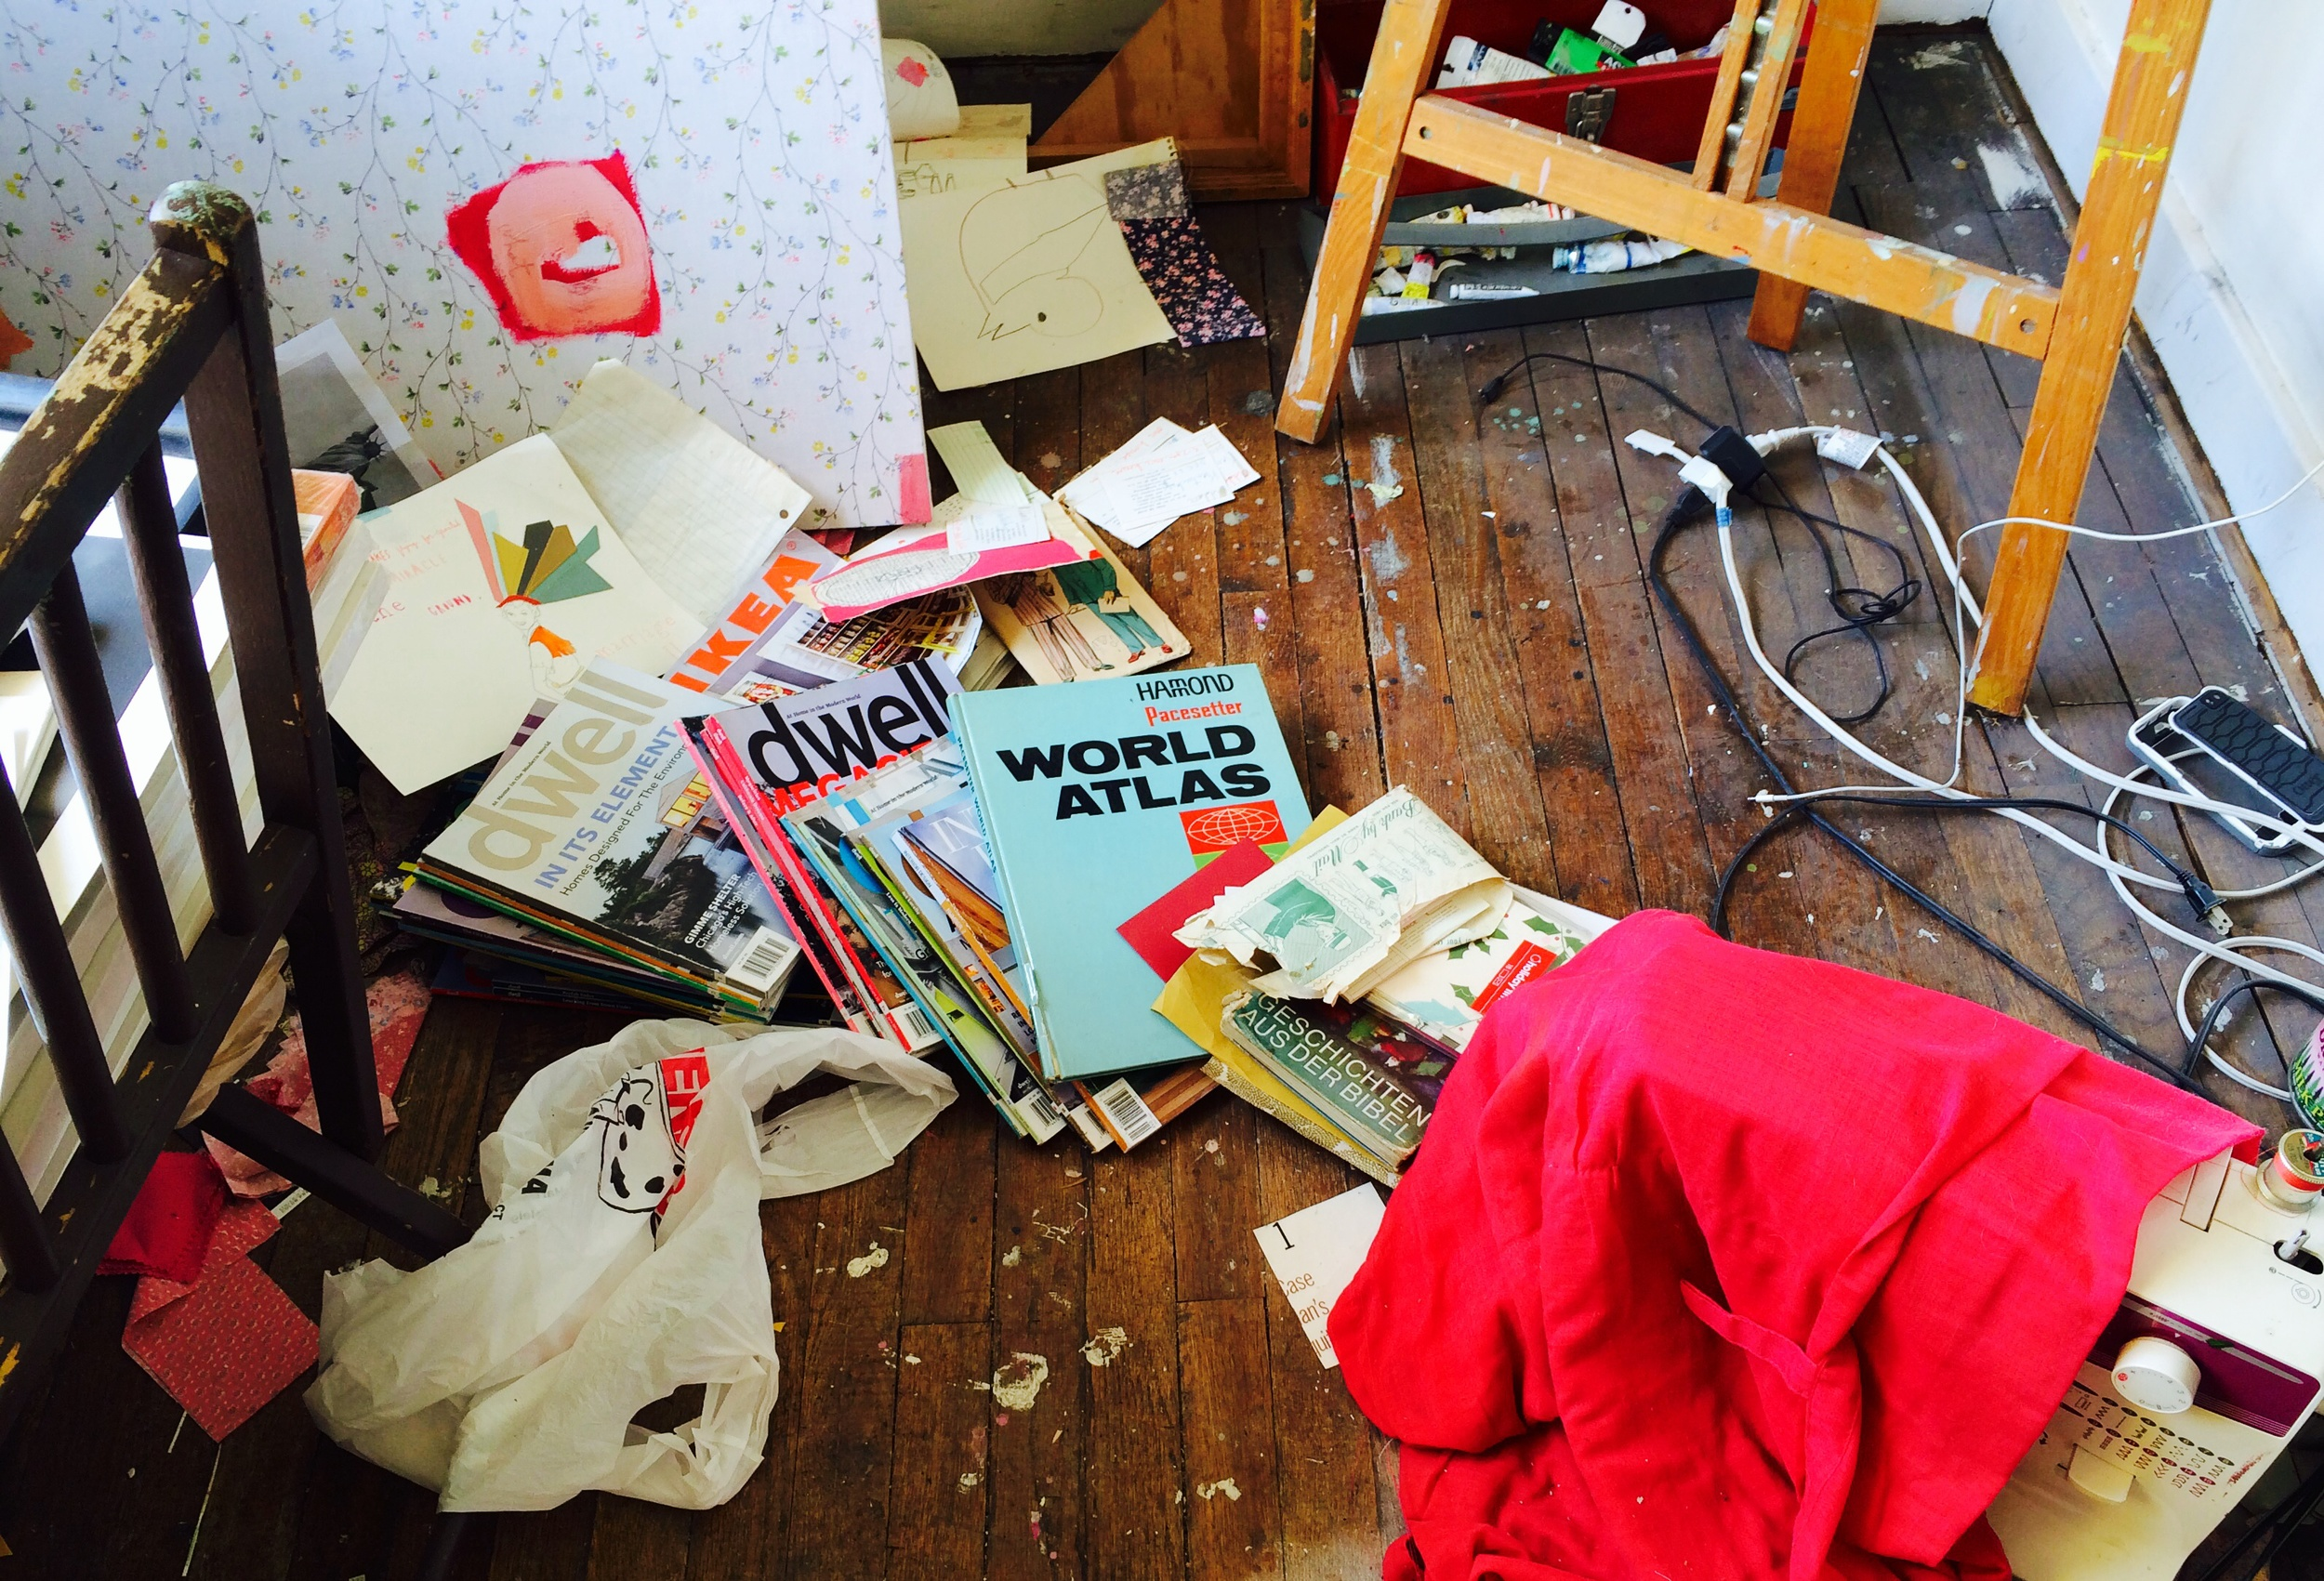 Studio floor. Every time I go, the session ends with a phone call about a baby meltdown. That hasn't left any time for clean up.